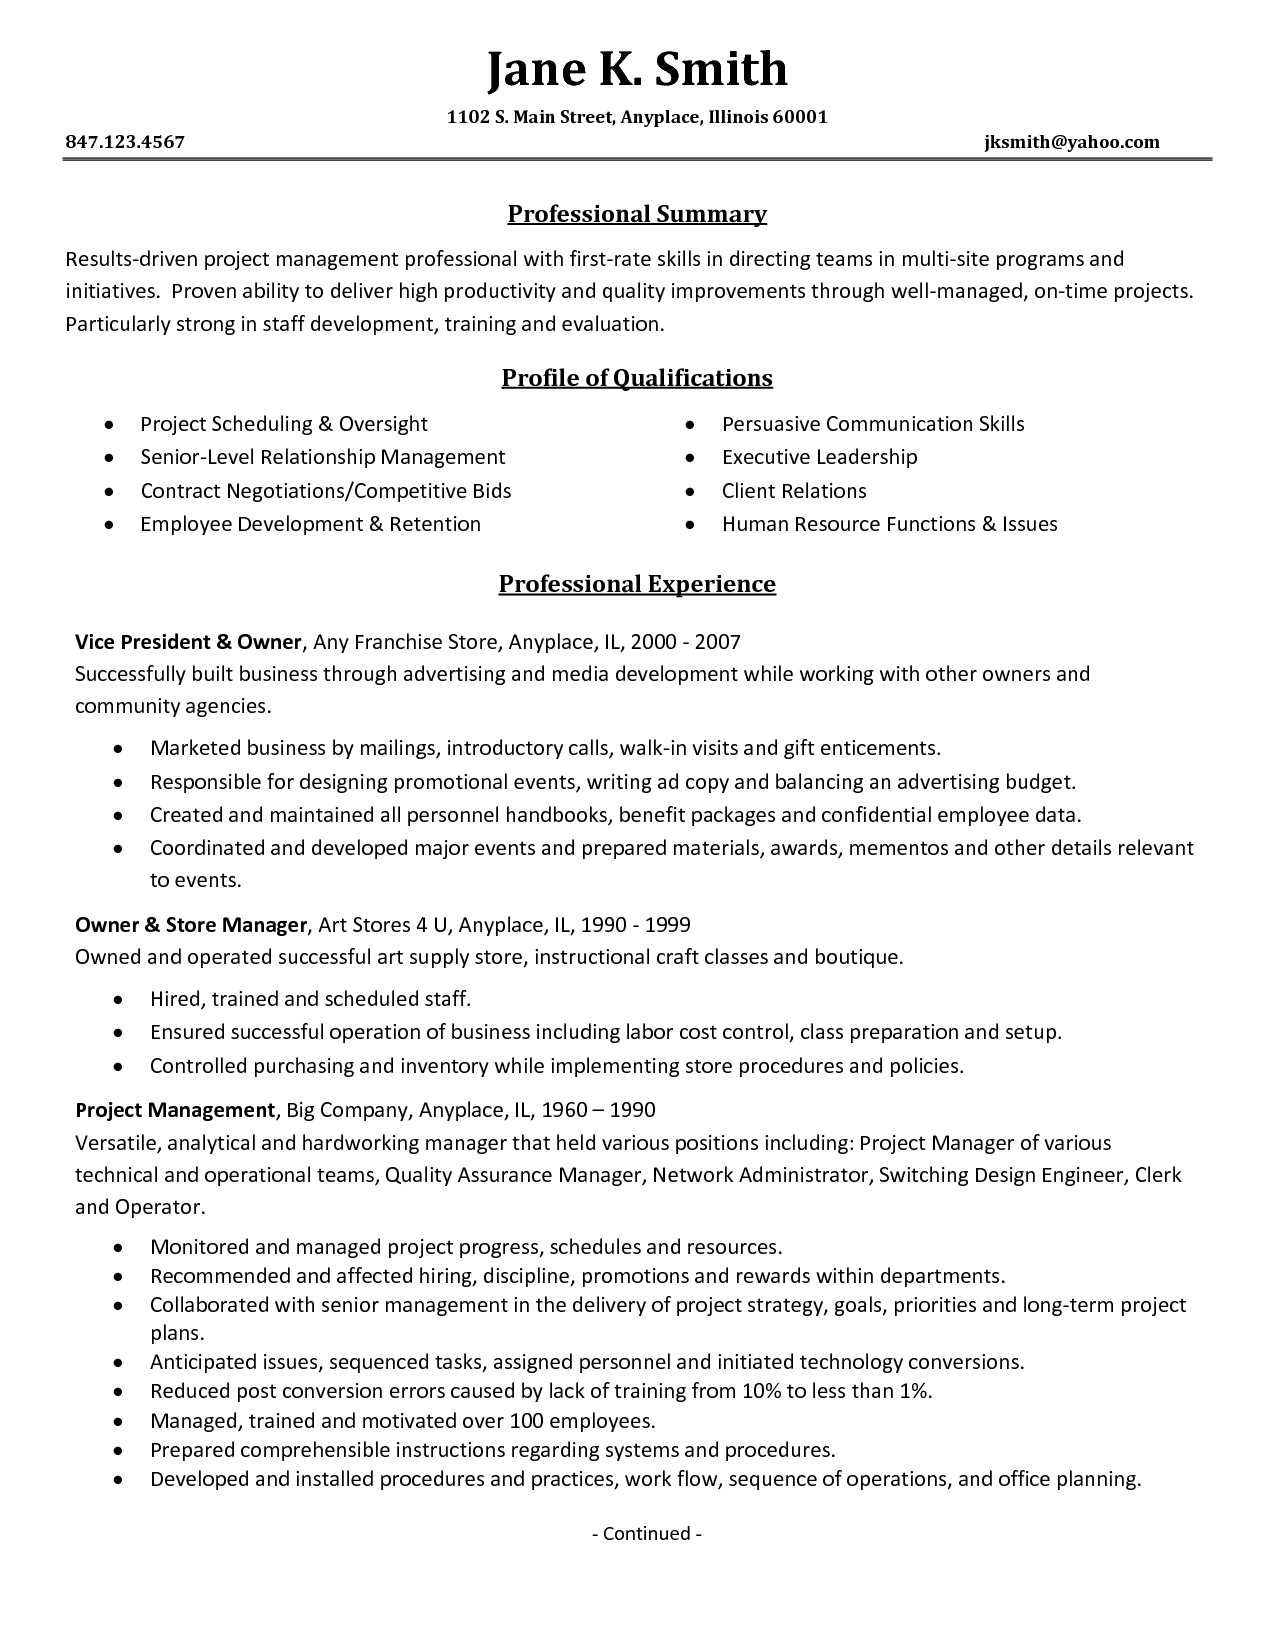 Marketing Resume Skills Leadership Skills Resume Leadership Skills Resume Template…  Job